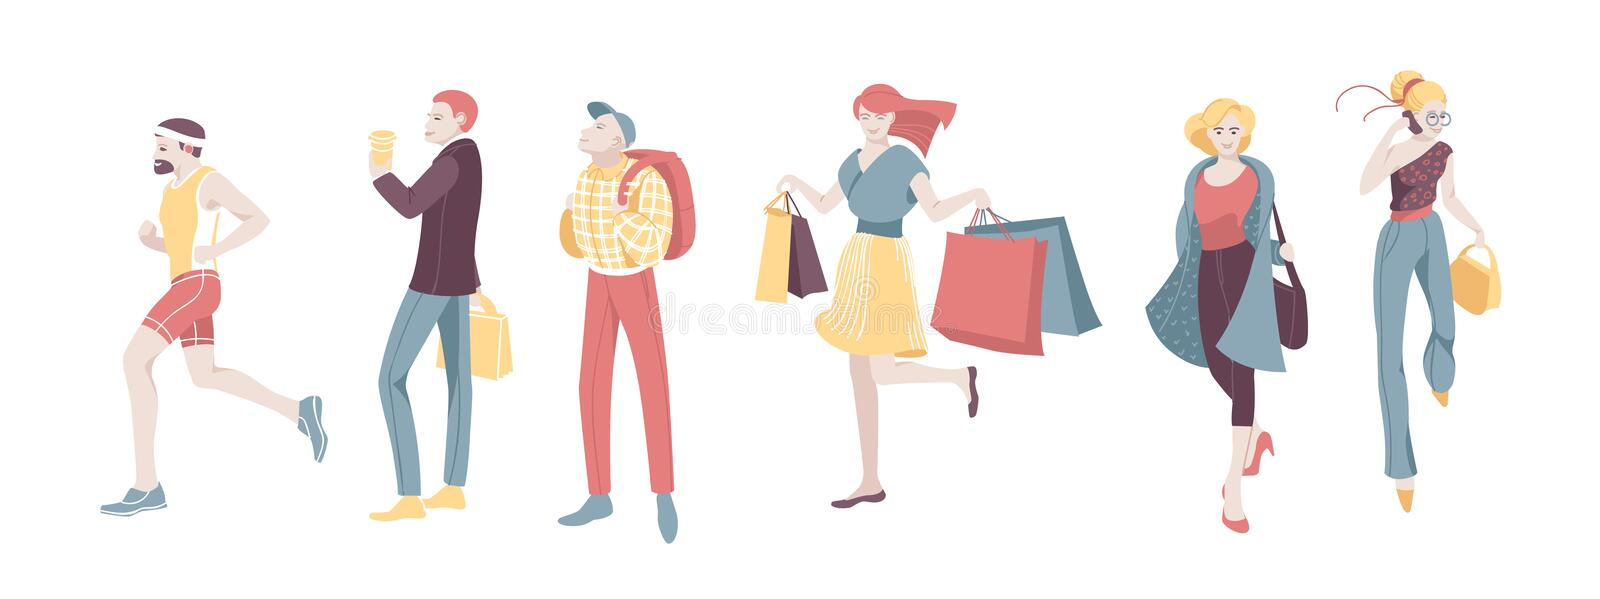 Various Urban People Character Walking Isolated Set. Guy Run, Woman Talk Smartphone and Shopping. Casual vector illustration